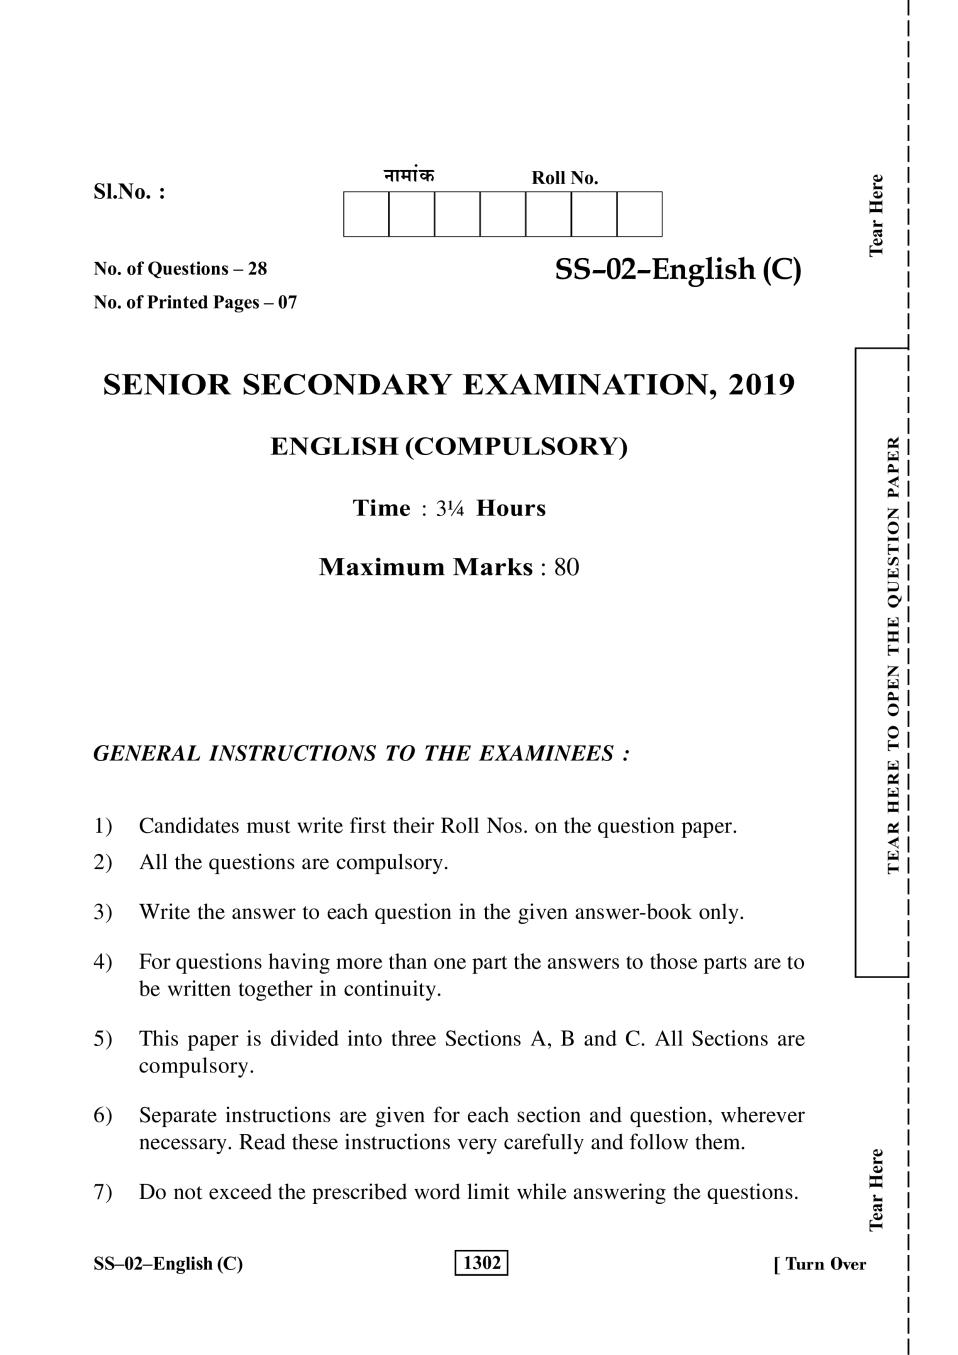 Rajasthan Board Sr. Secondary English (C) Question Paper